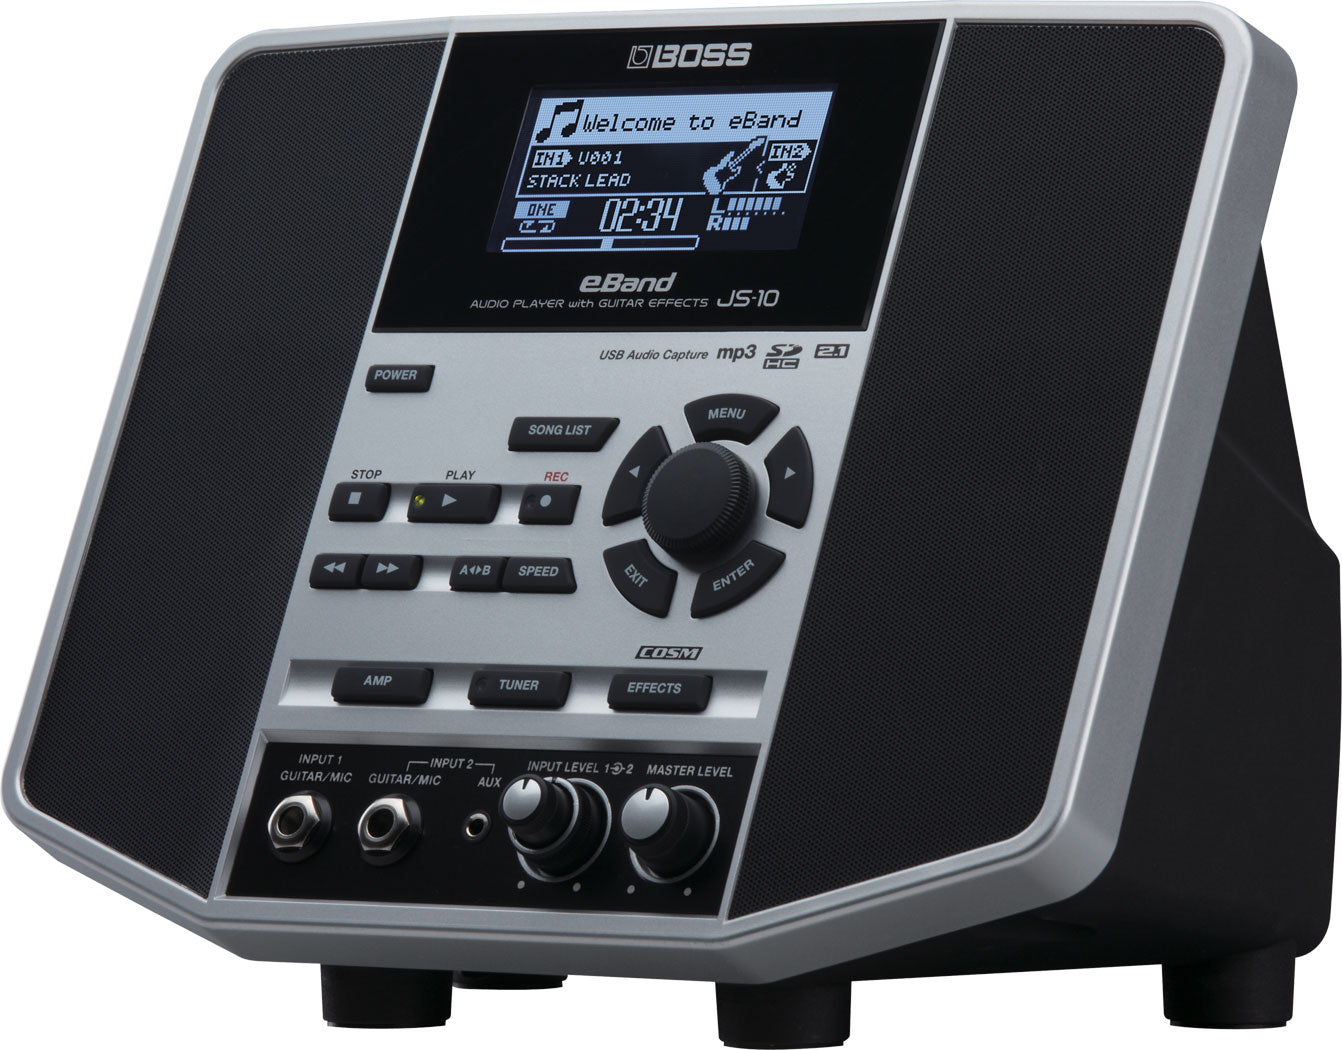 BOSS JS-10 EBAND - AUDIO PLAYER & EFFECTS